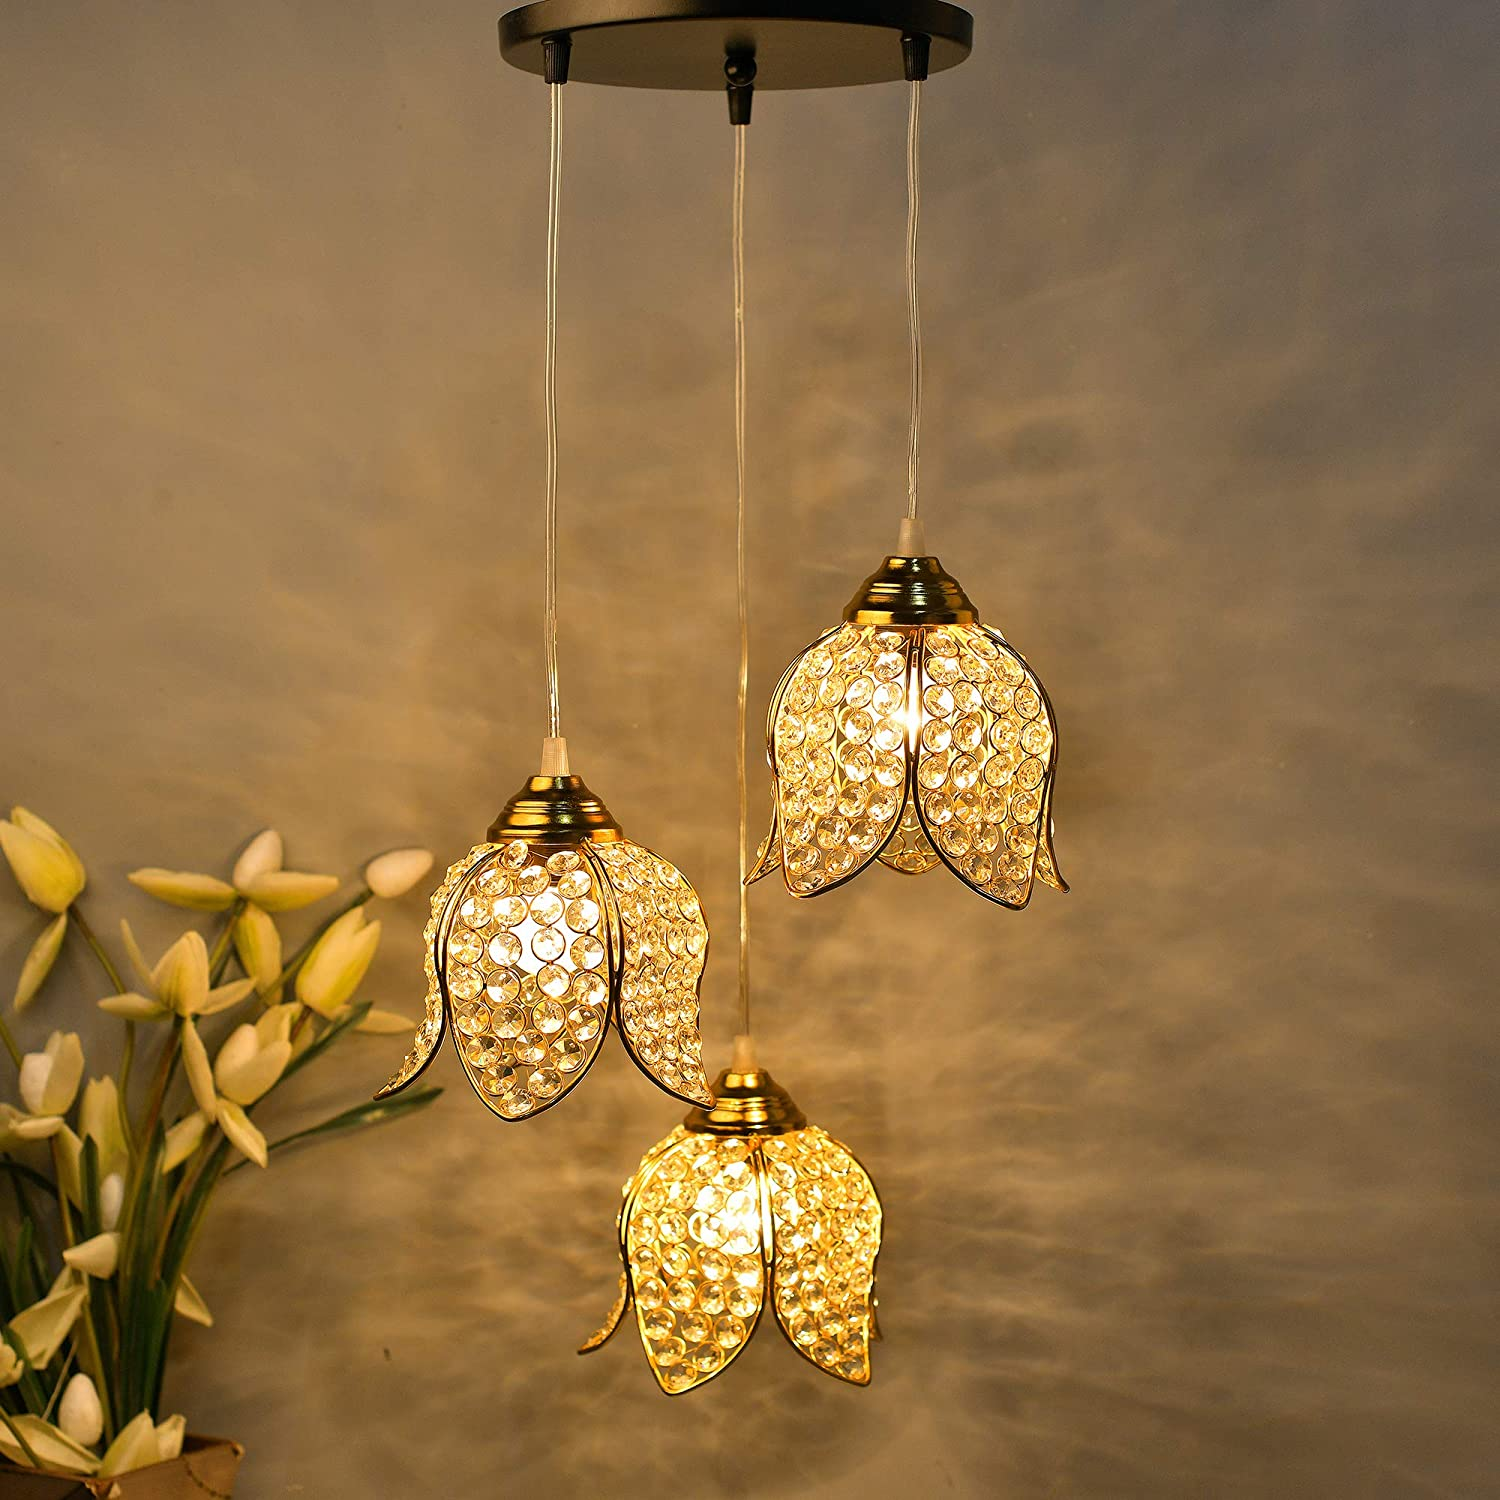 hanging lights for Indian homes